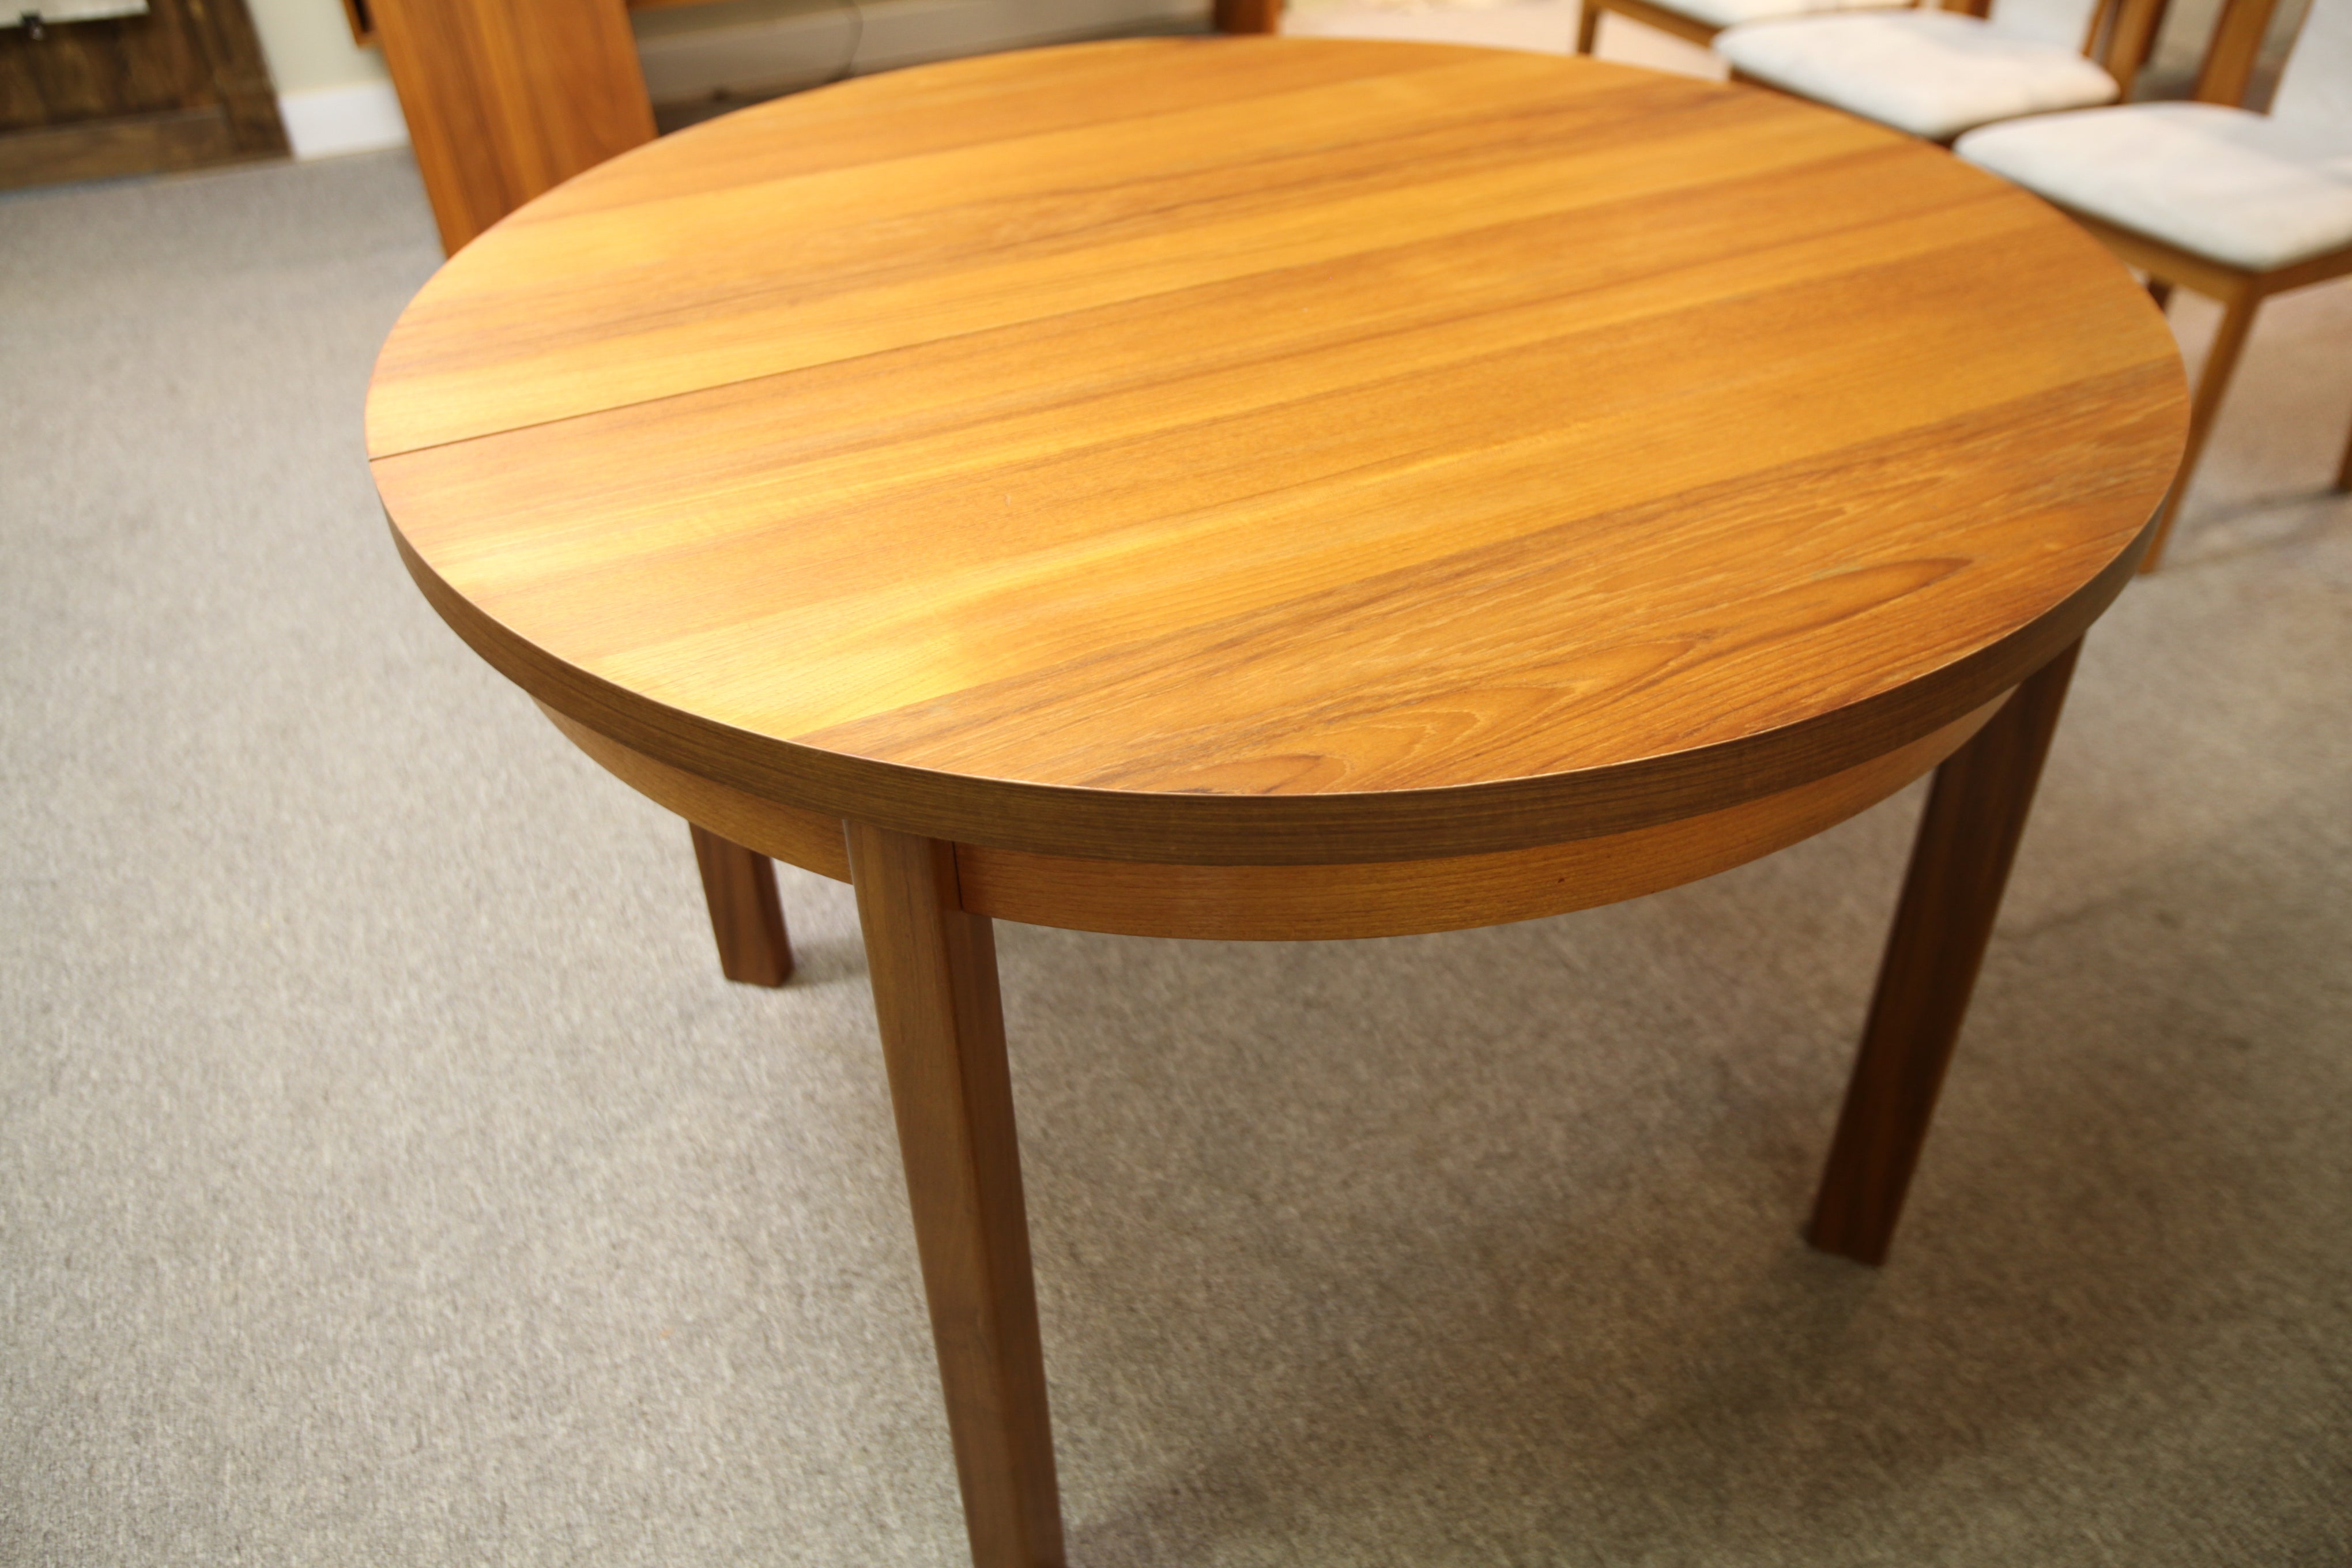 "RS Associates Montreal Round Teak Dining Table W/ 2 Leafs (76""x44"") or 44"" round"